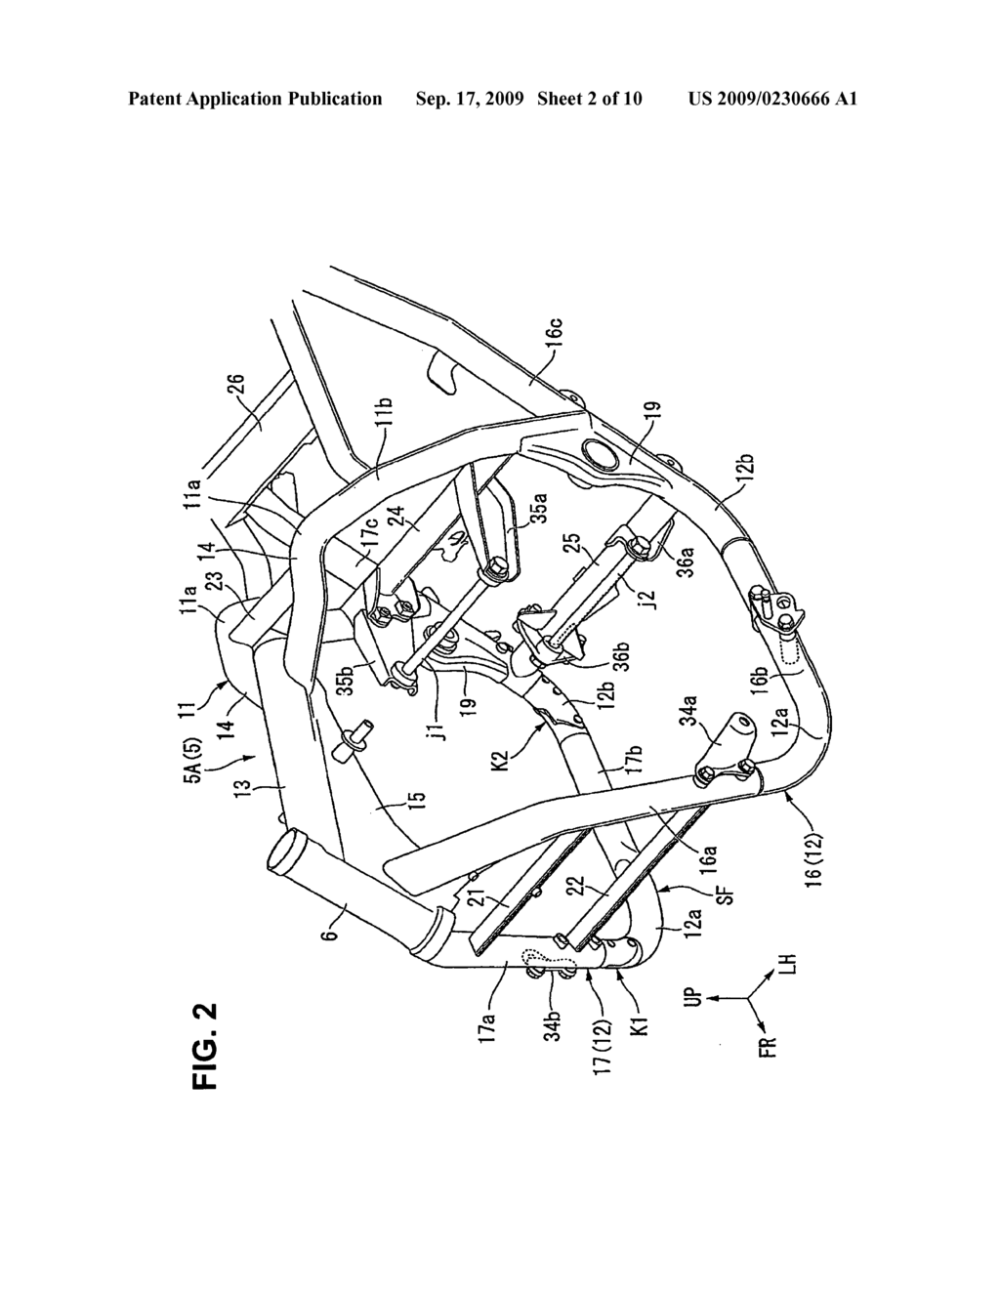 medium resolution of vehicle frame joint for a saddle type vehicle and vehicle frame incorporating same diagram schematic and image 03